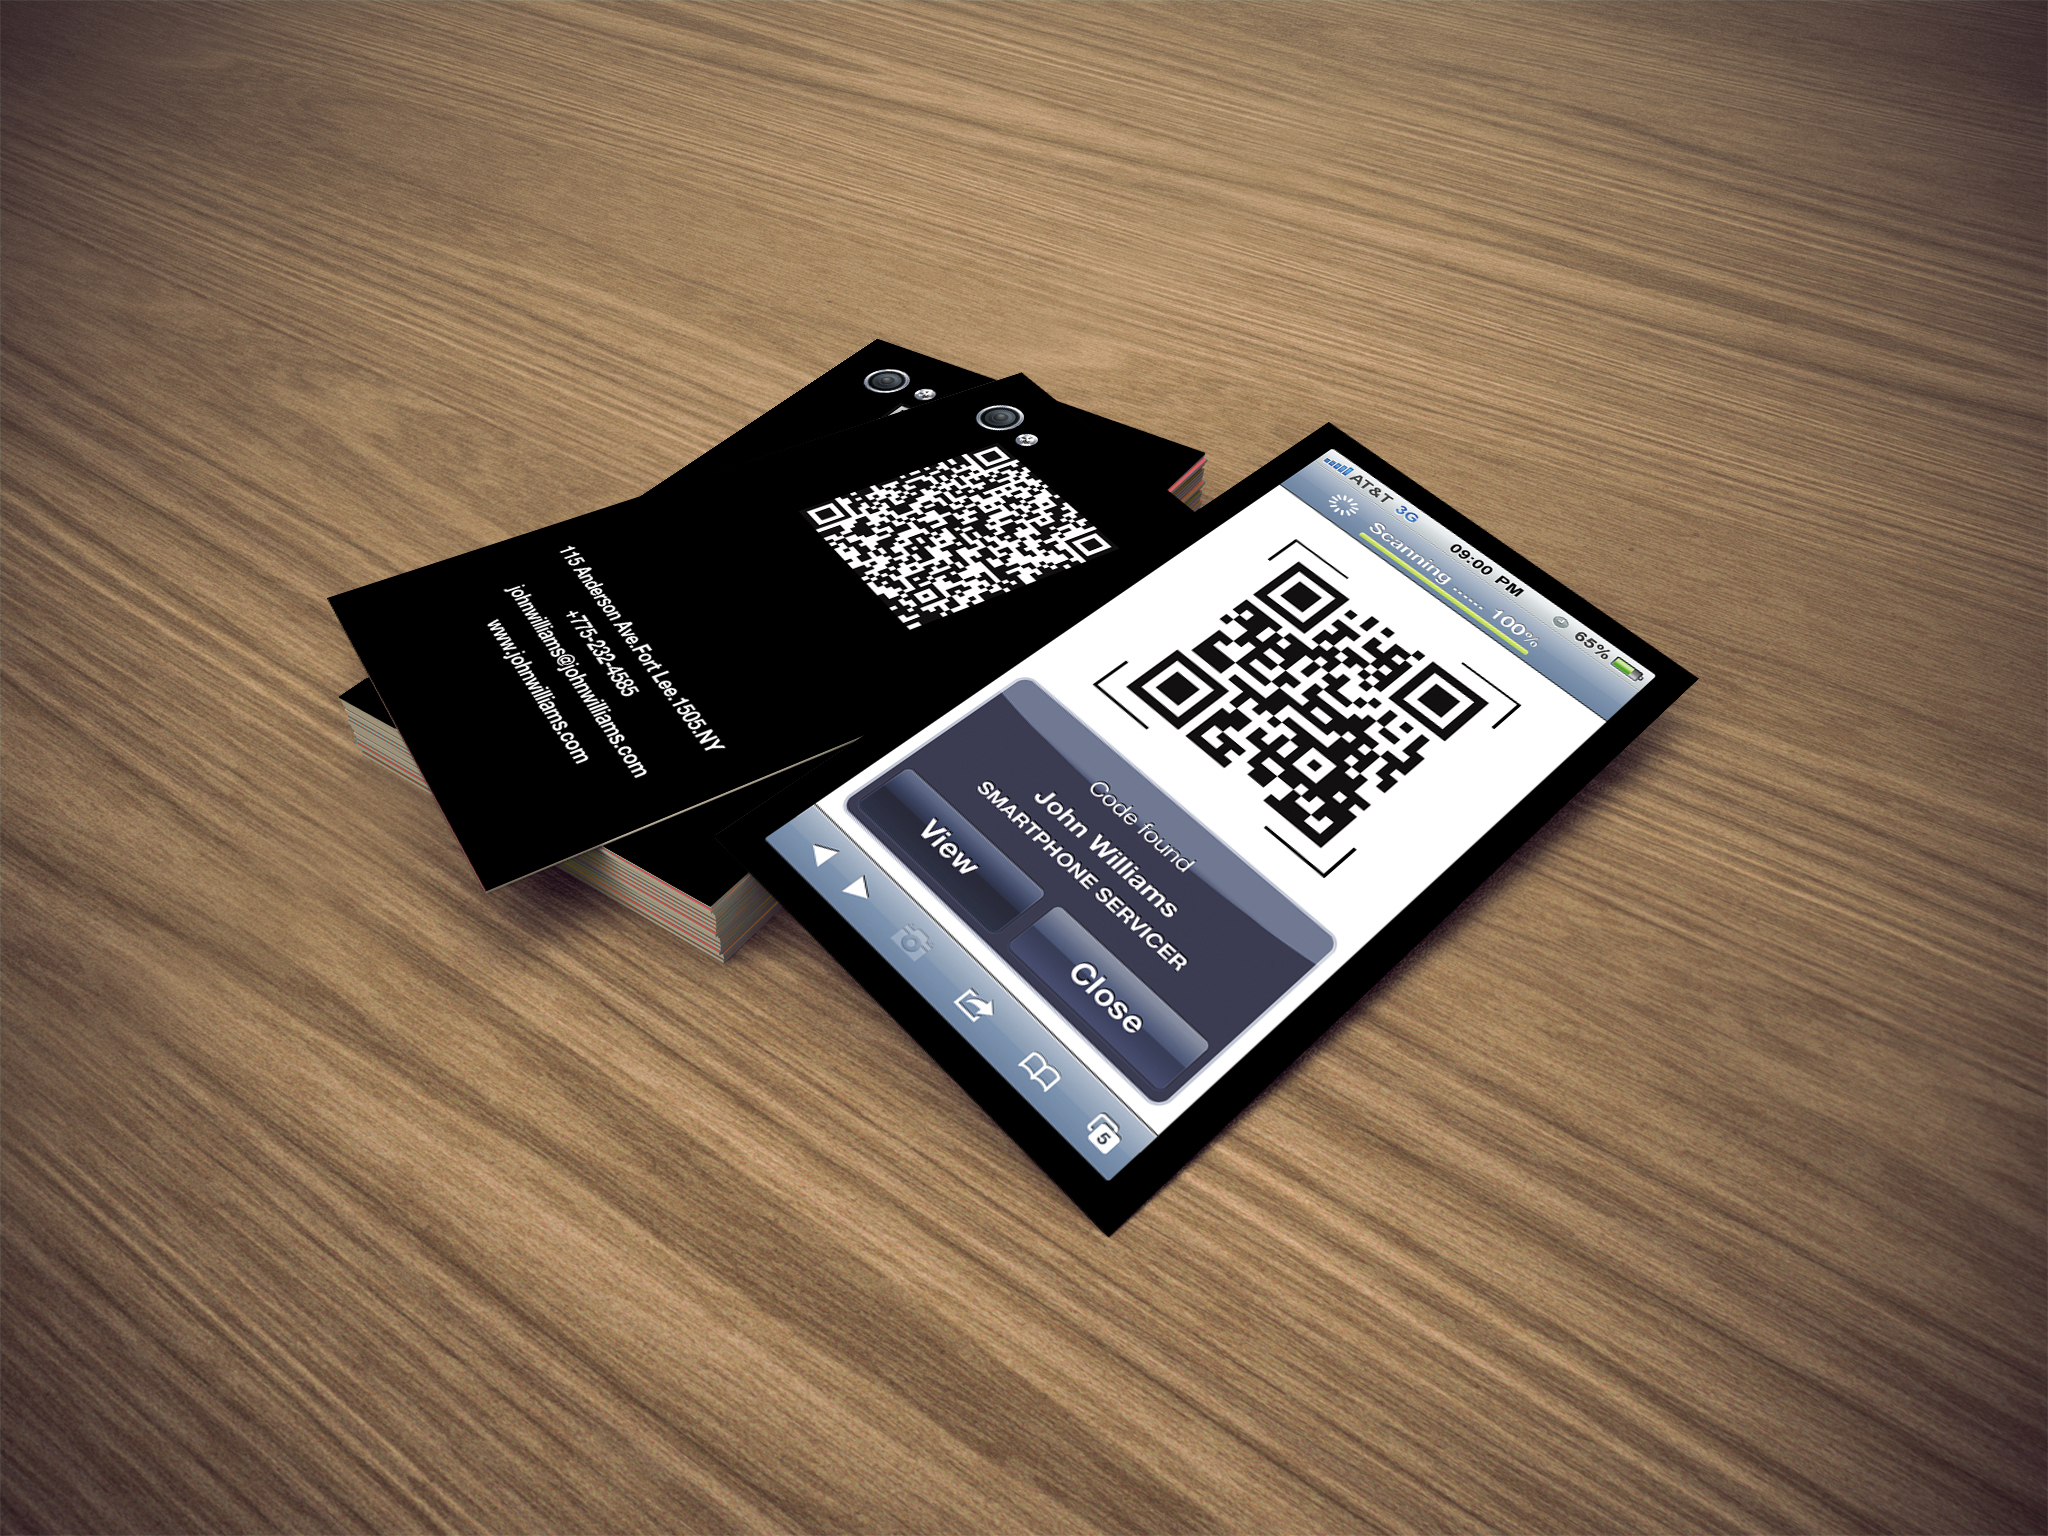 iPhone Business Card QR by CaCaDoo on DeviantArt